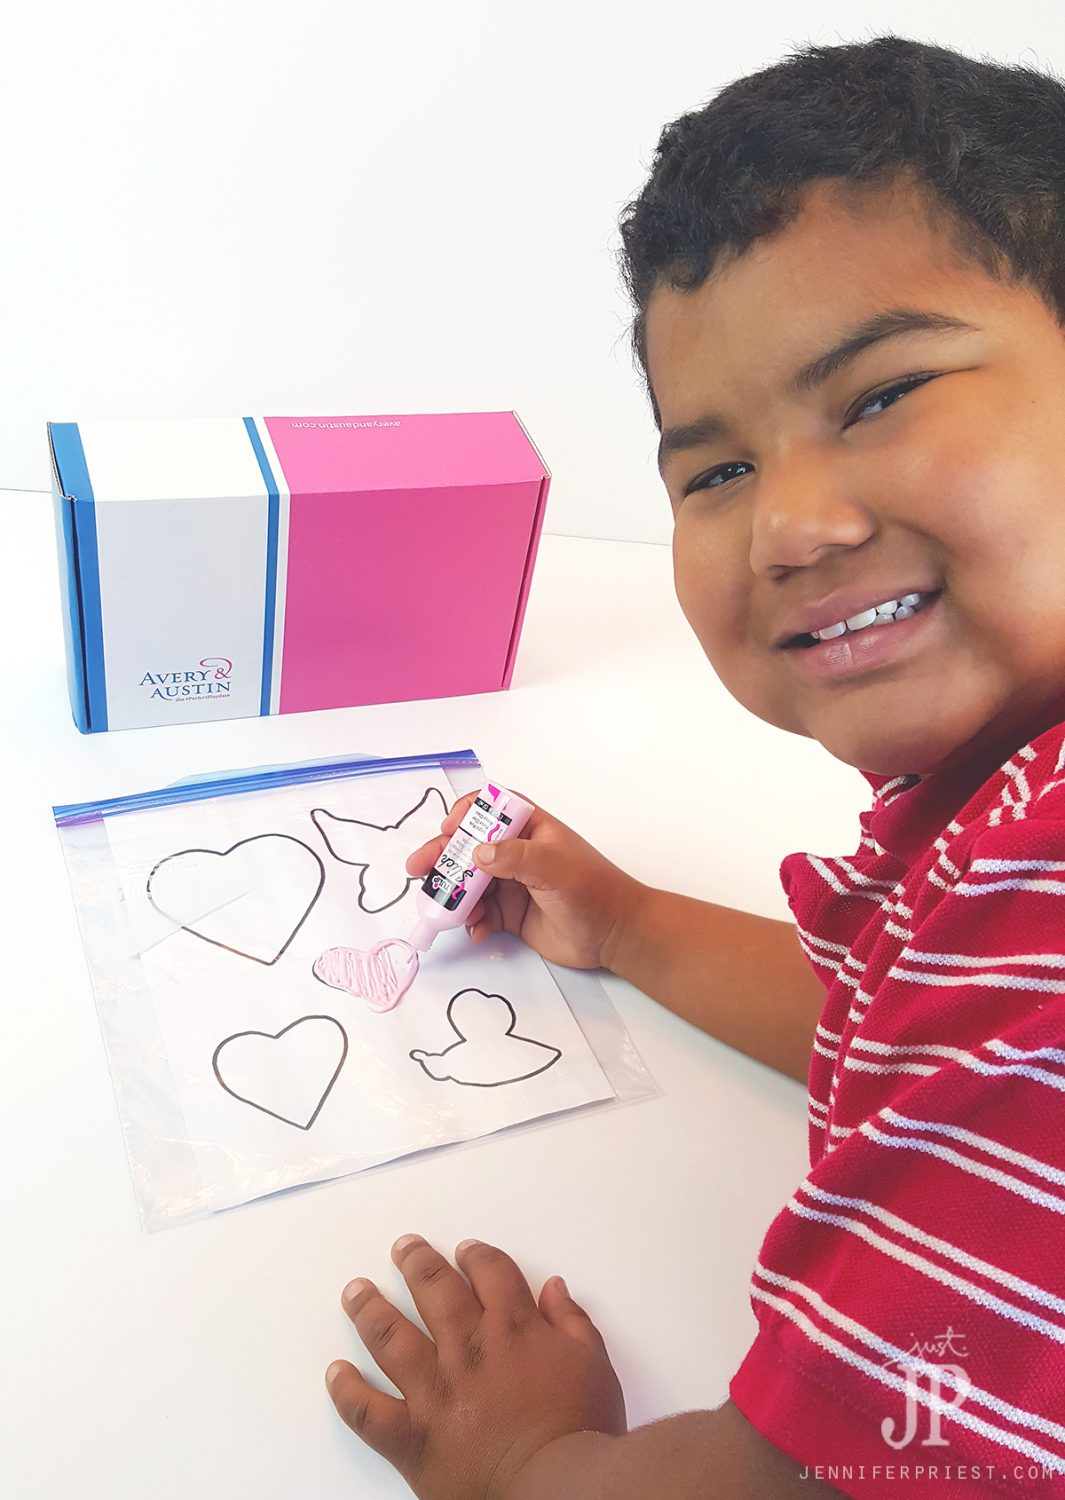 This craft is so fun for kids! How to make window clings with puffy paint and coloring book pages as patterns.